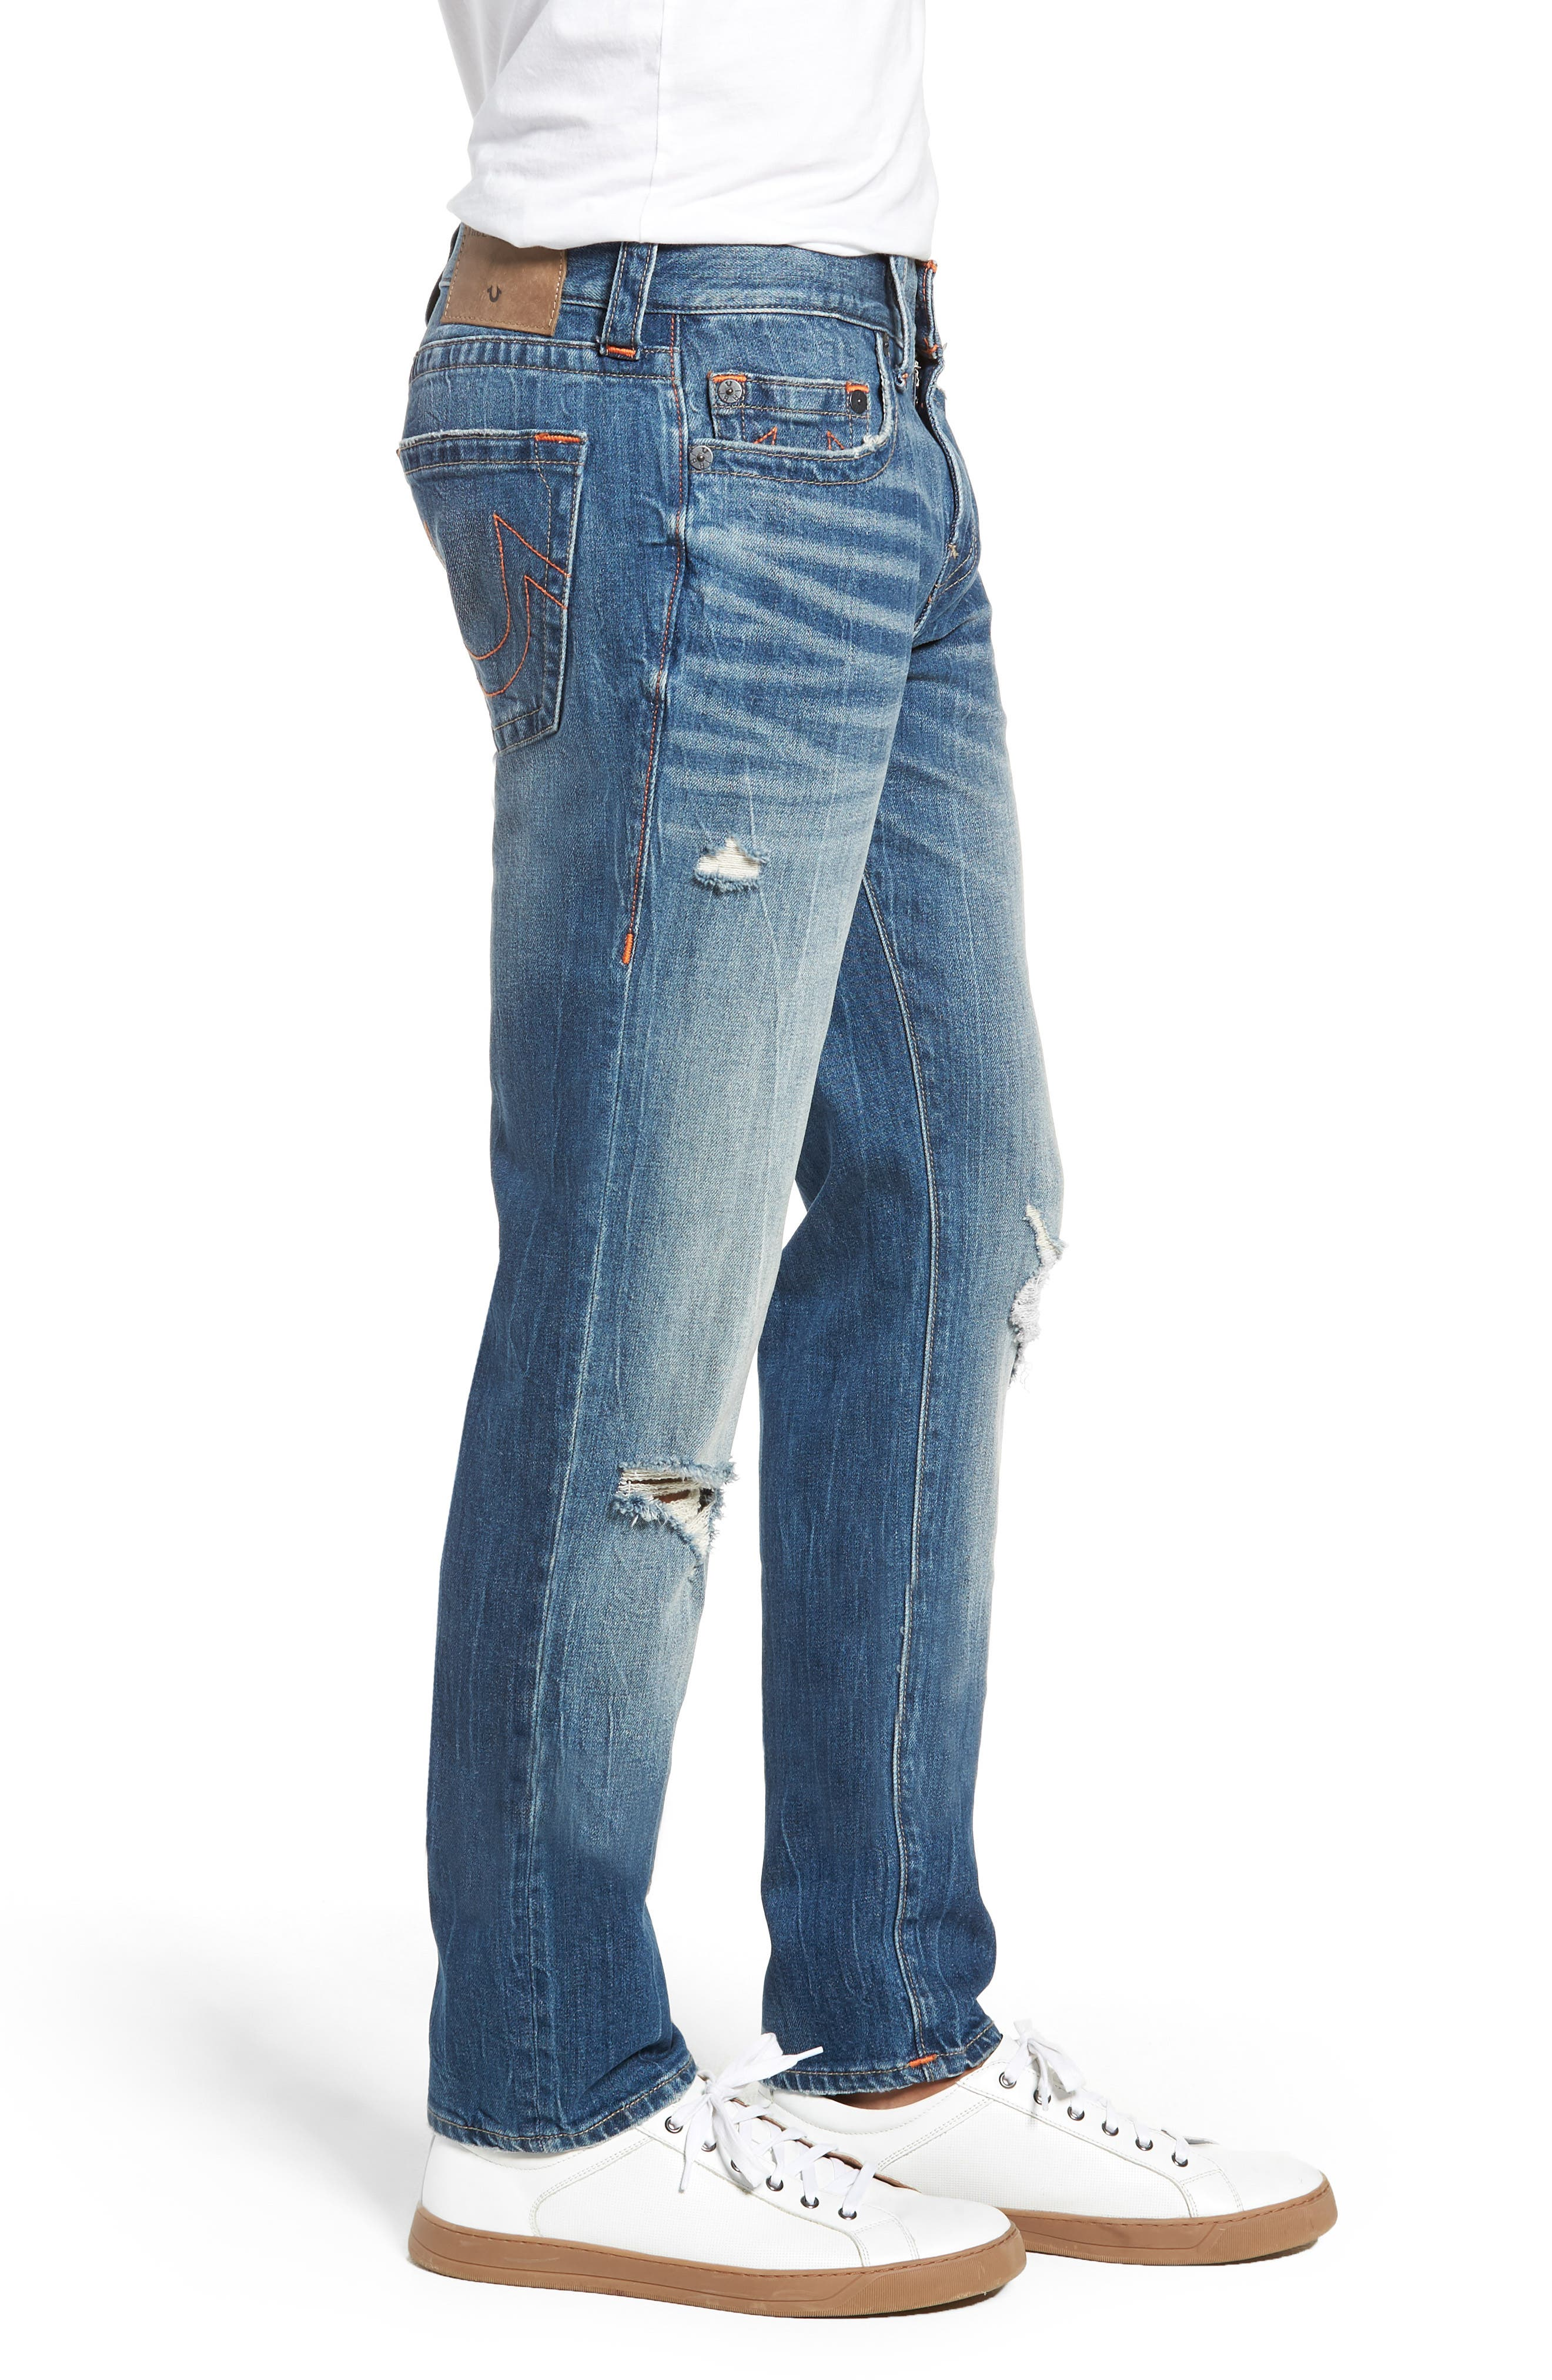 Rocco Skinny Fit Jeans,                             Alternate thumbnail 3, color,                             WORN RAMPAGE